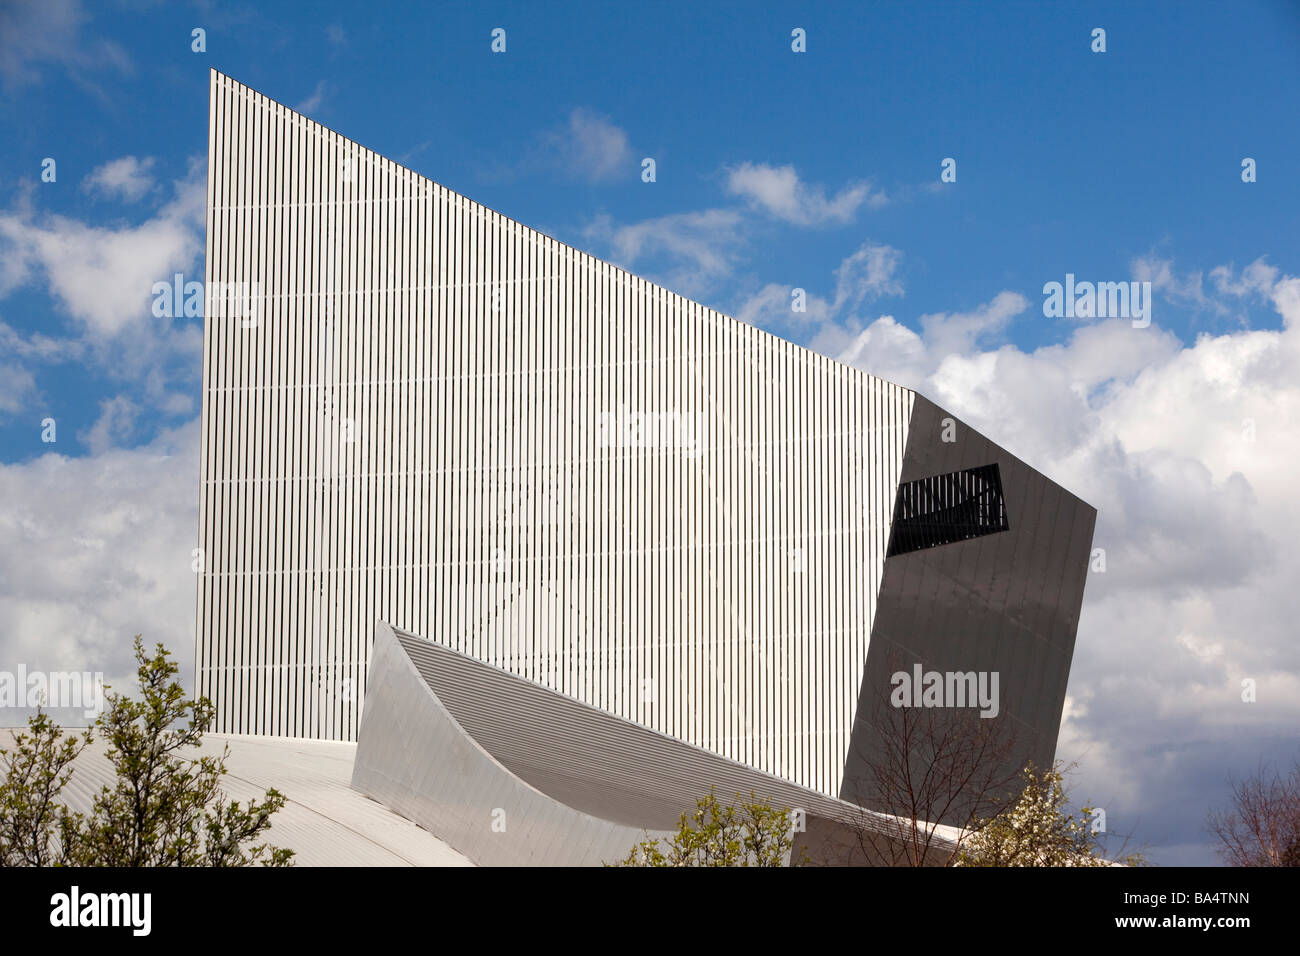 UK England Salford Quays Imperial War Museum north by Architect Daniel Libeskind - Stock Image